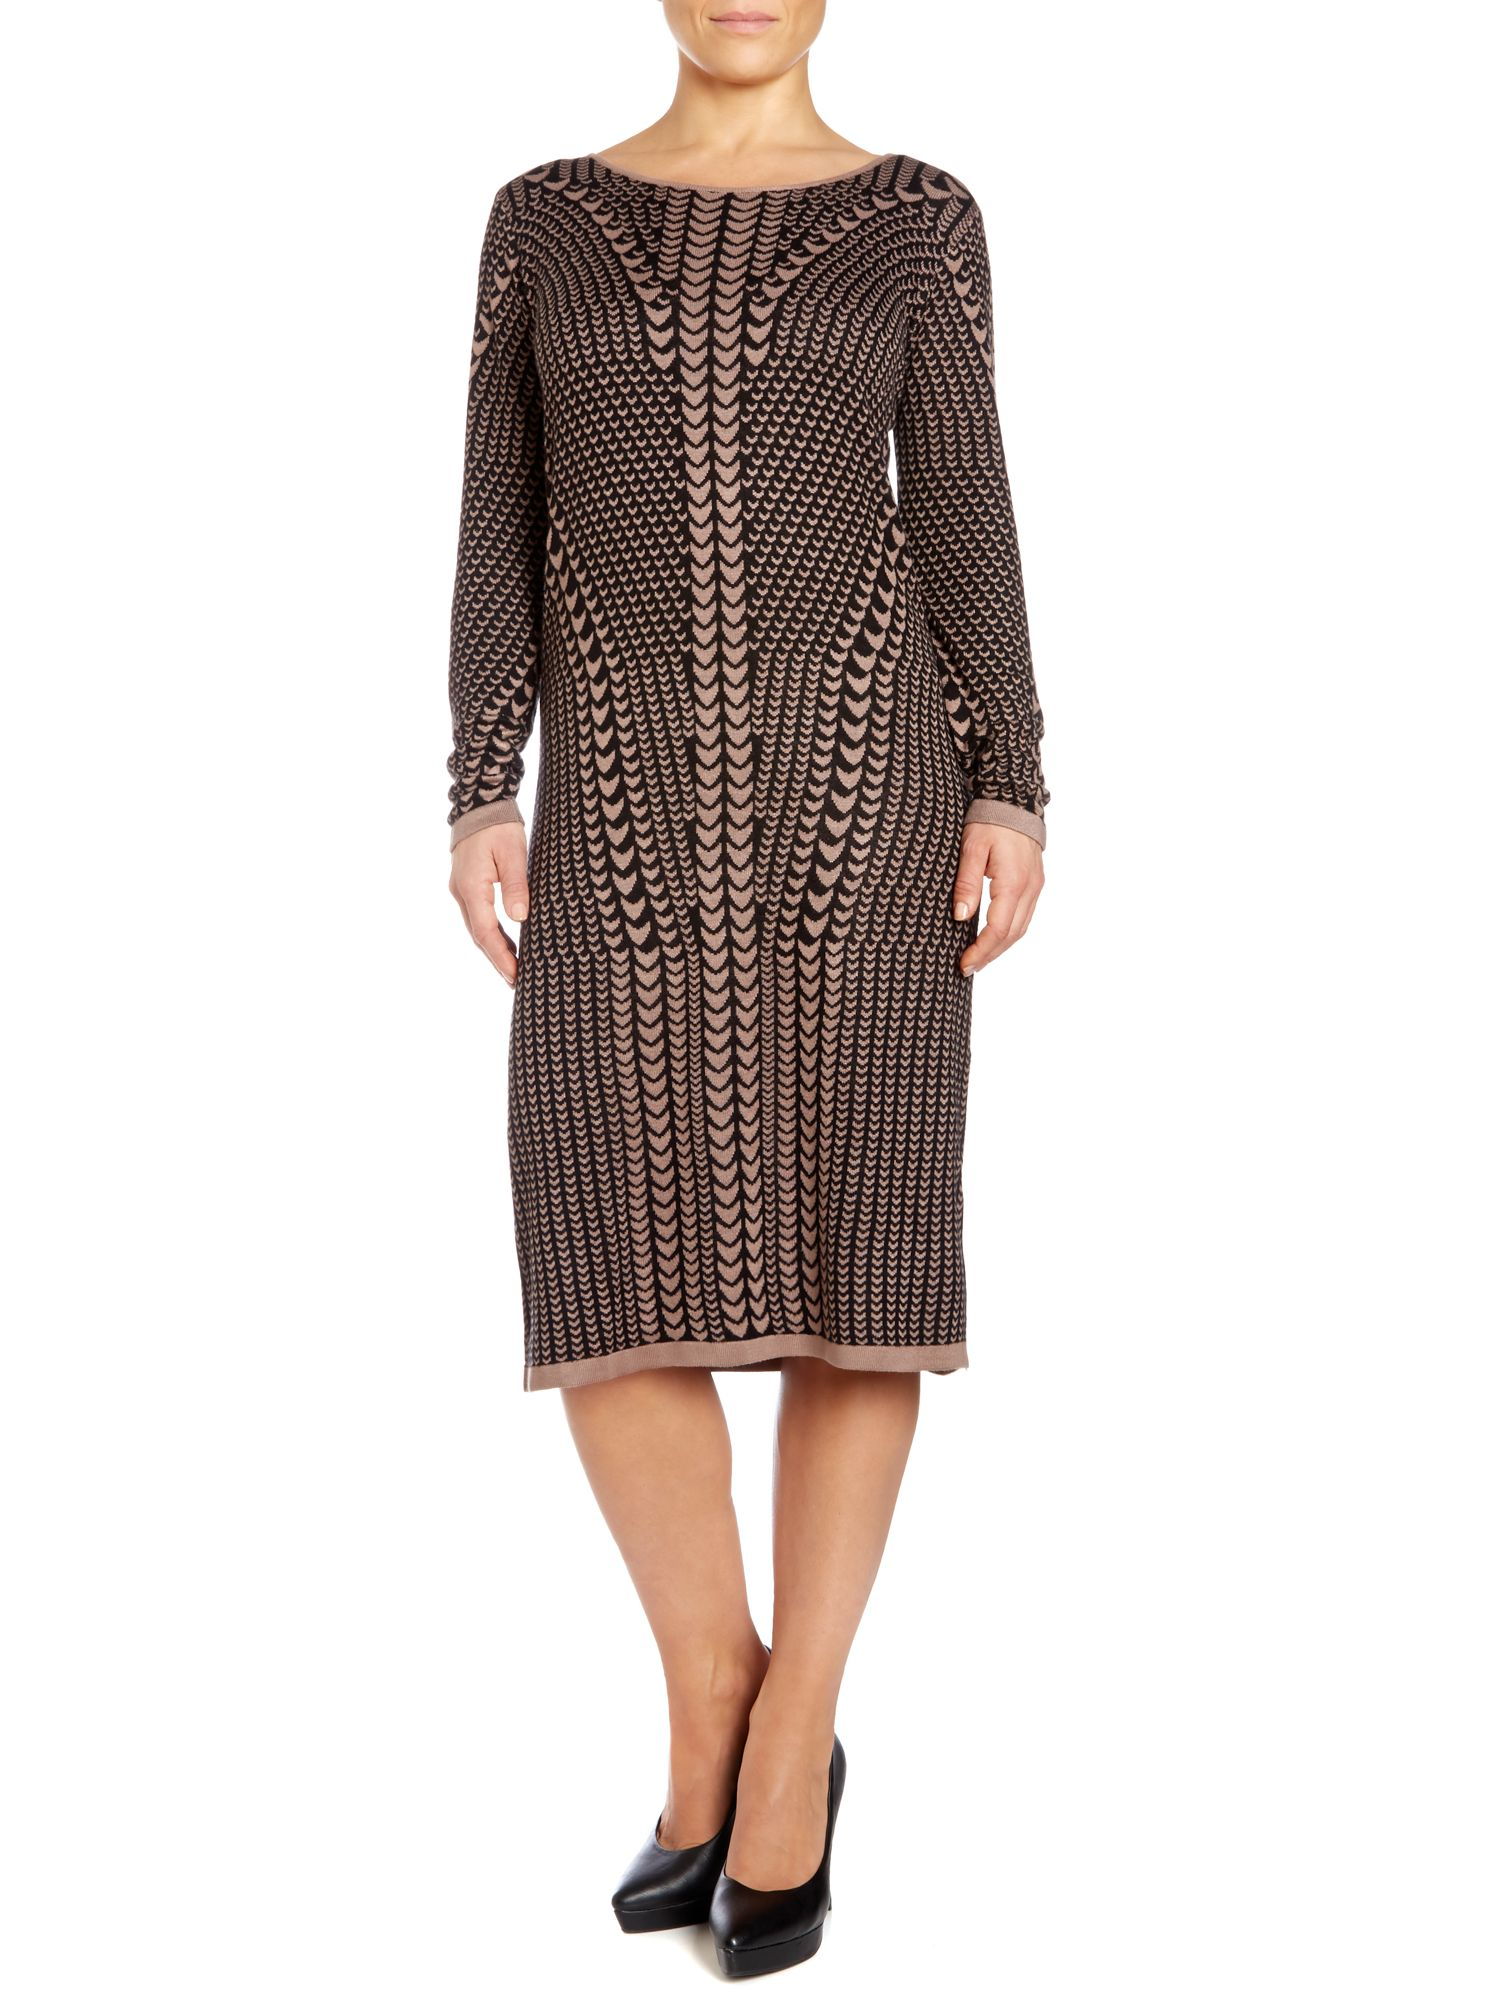 Art deco scallop print jumper dress